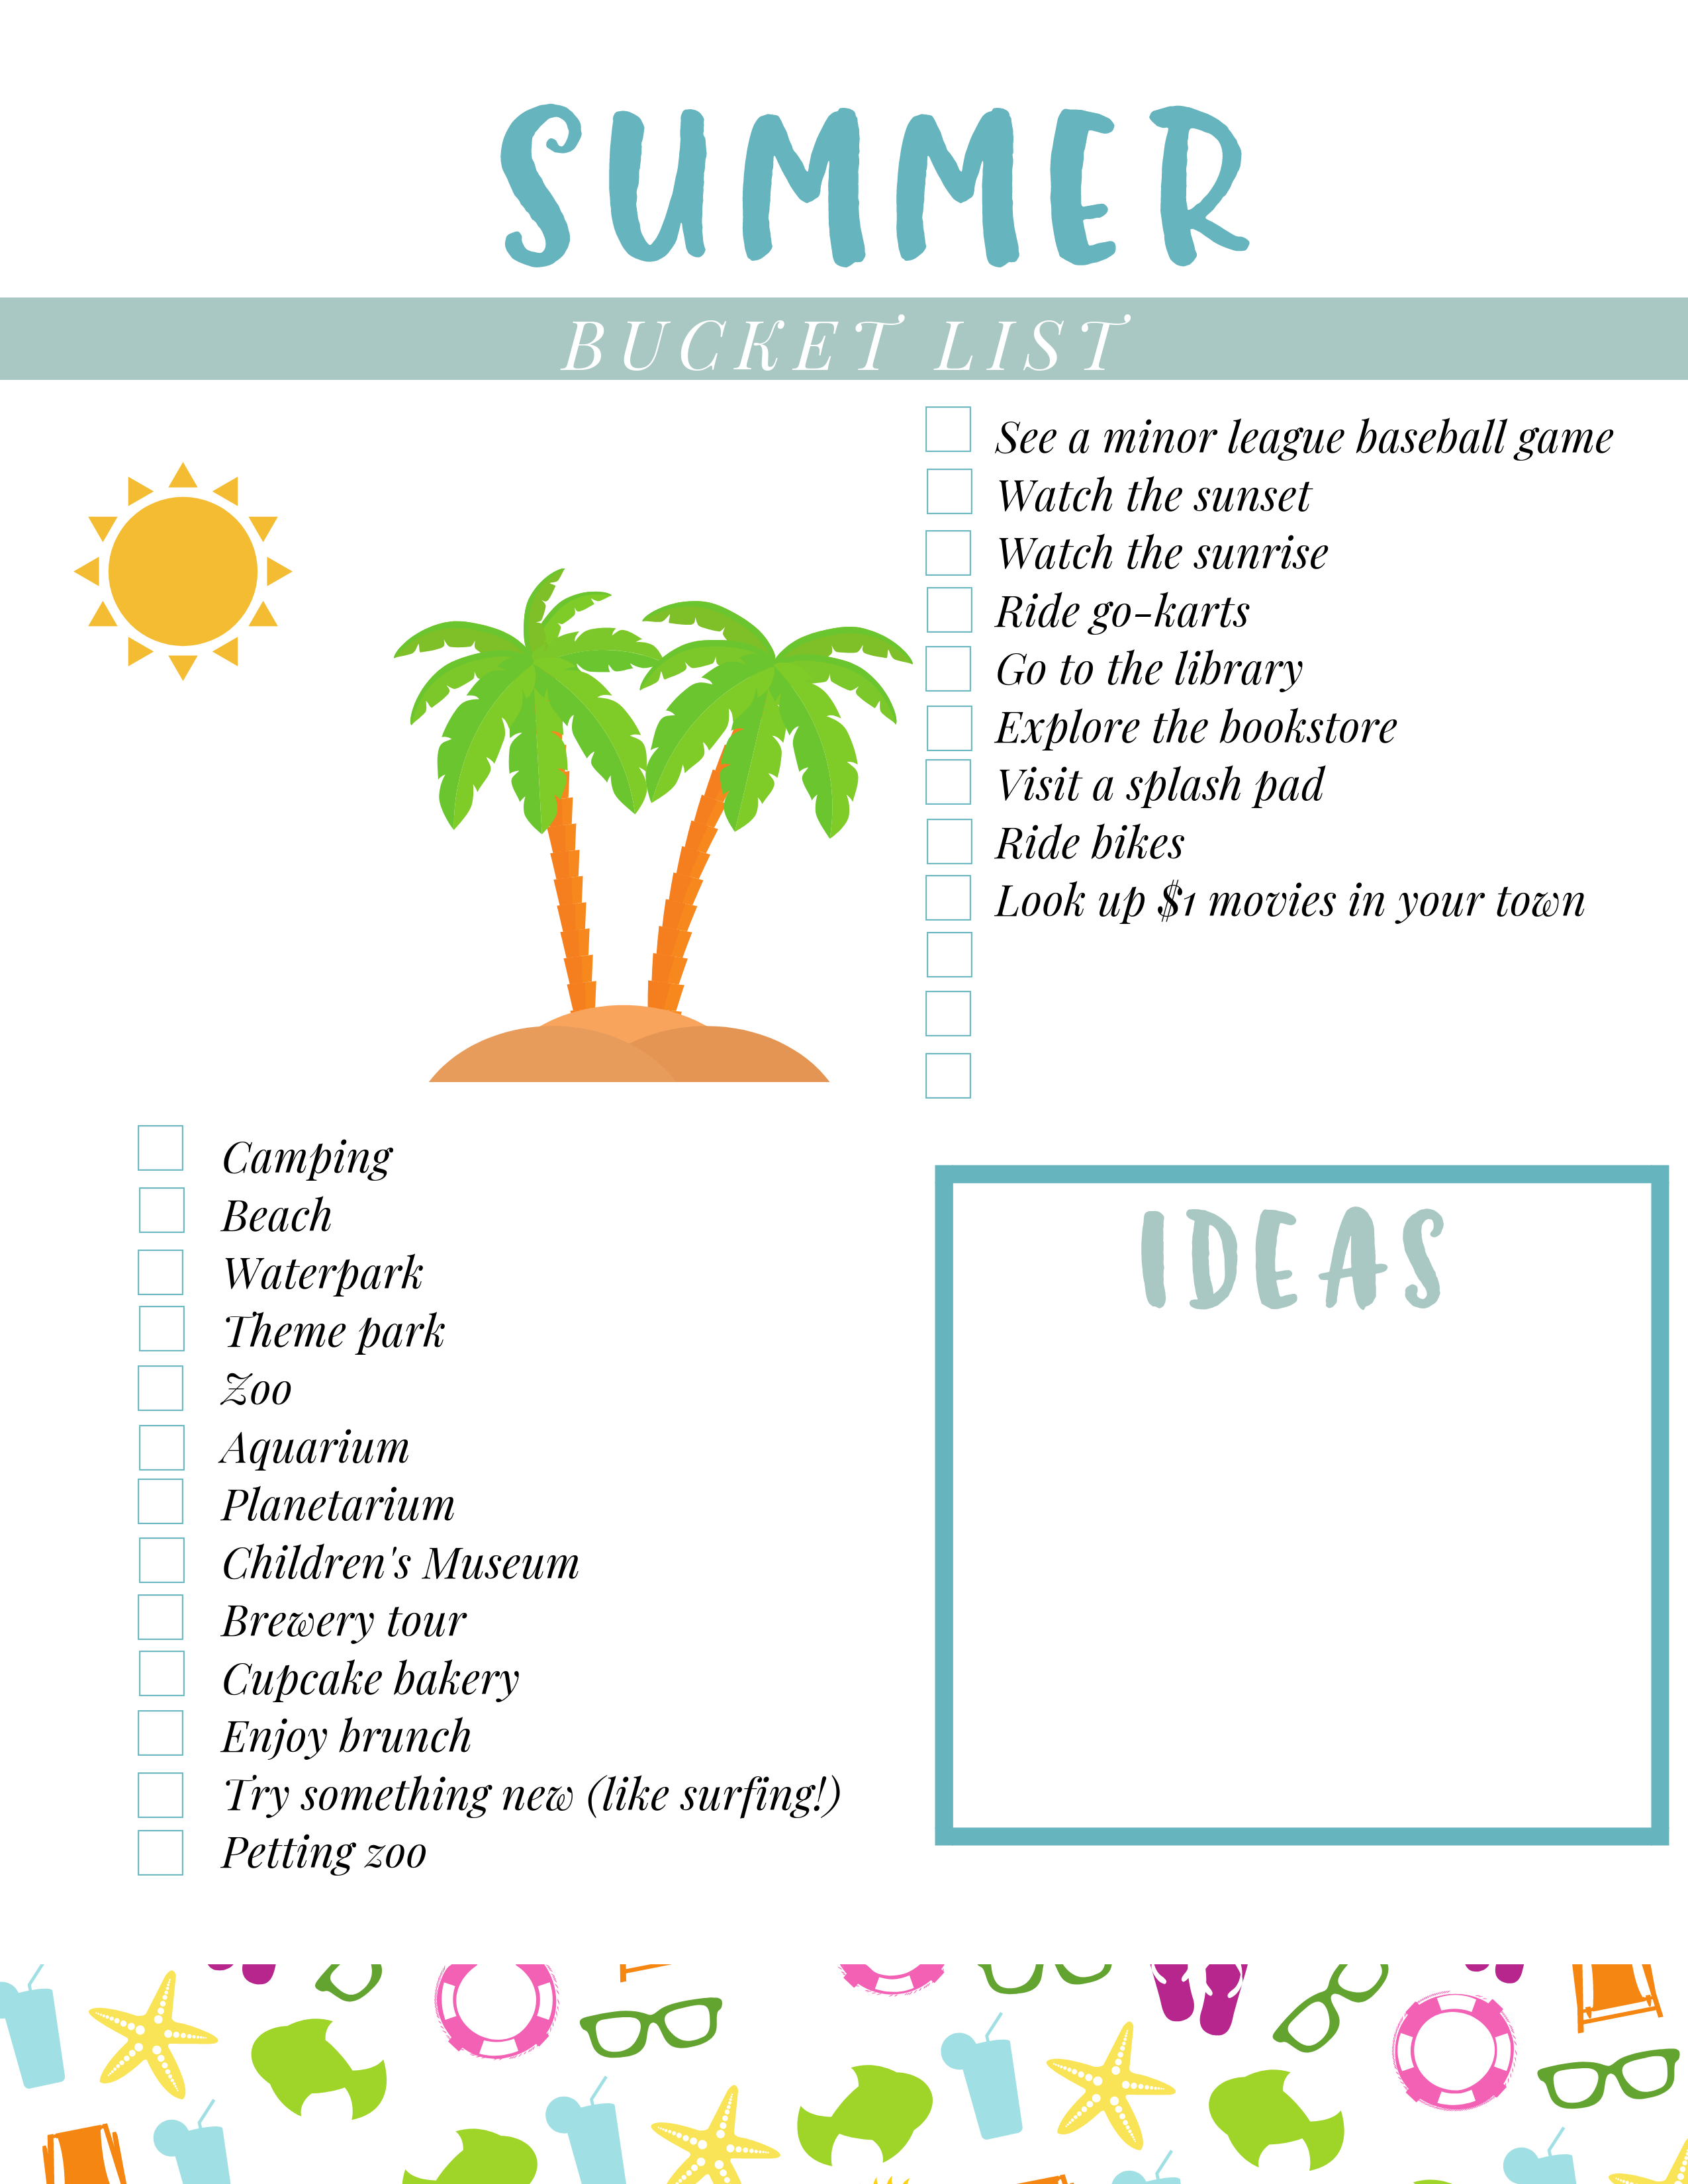 Celebrate Summer with a Summer Bucket List Printable